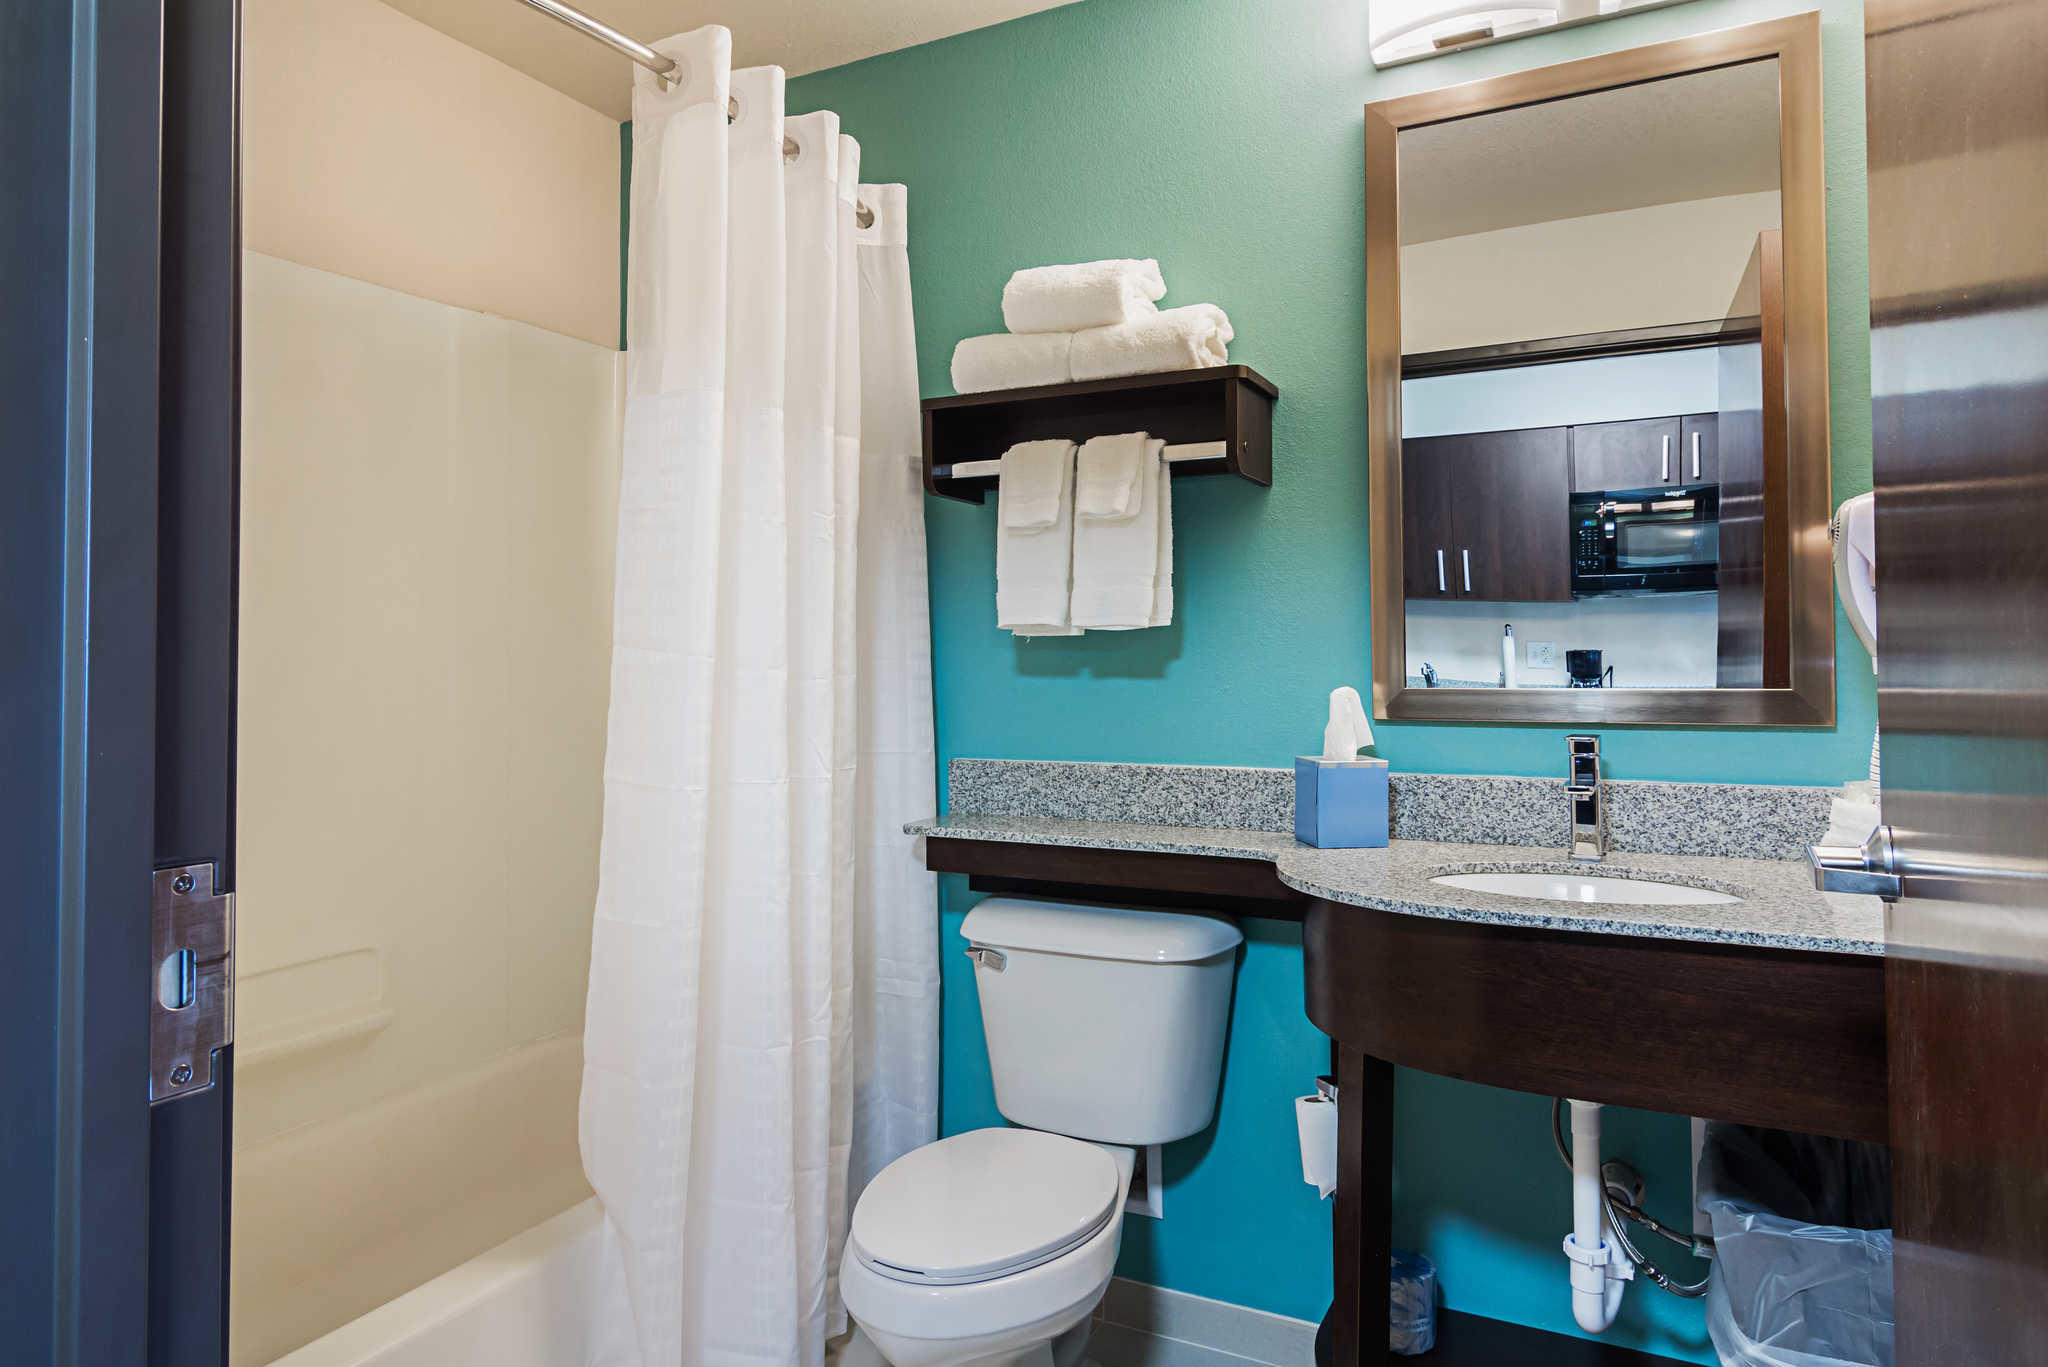 Suburban Extended Stay Hotel image 28